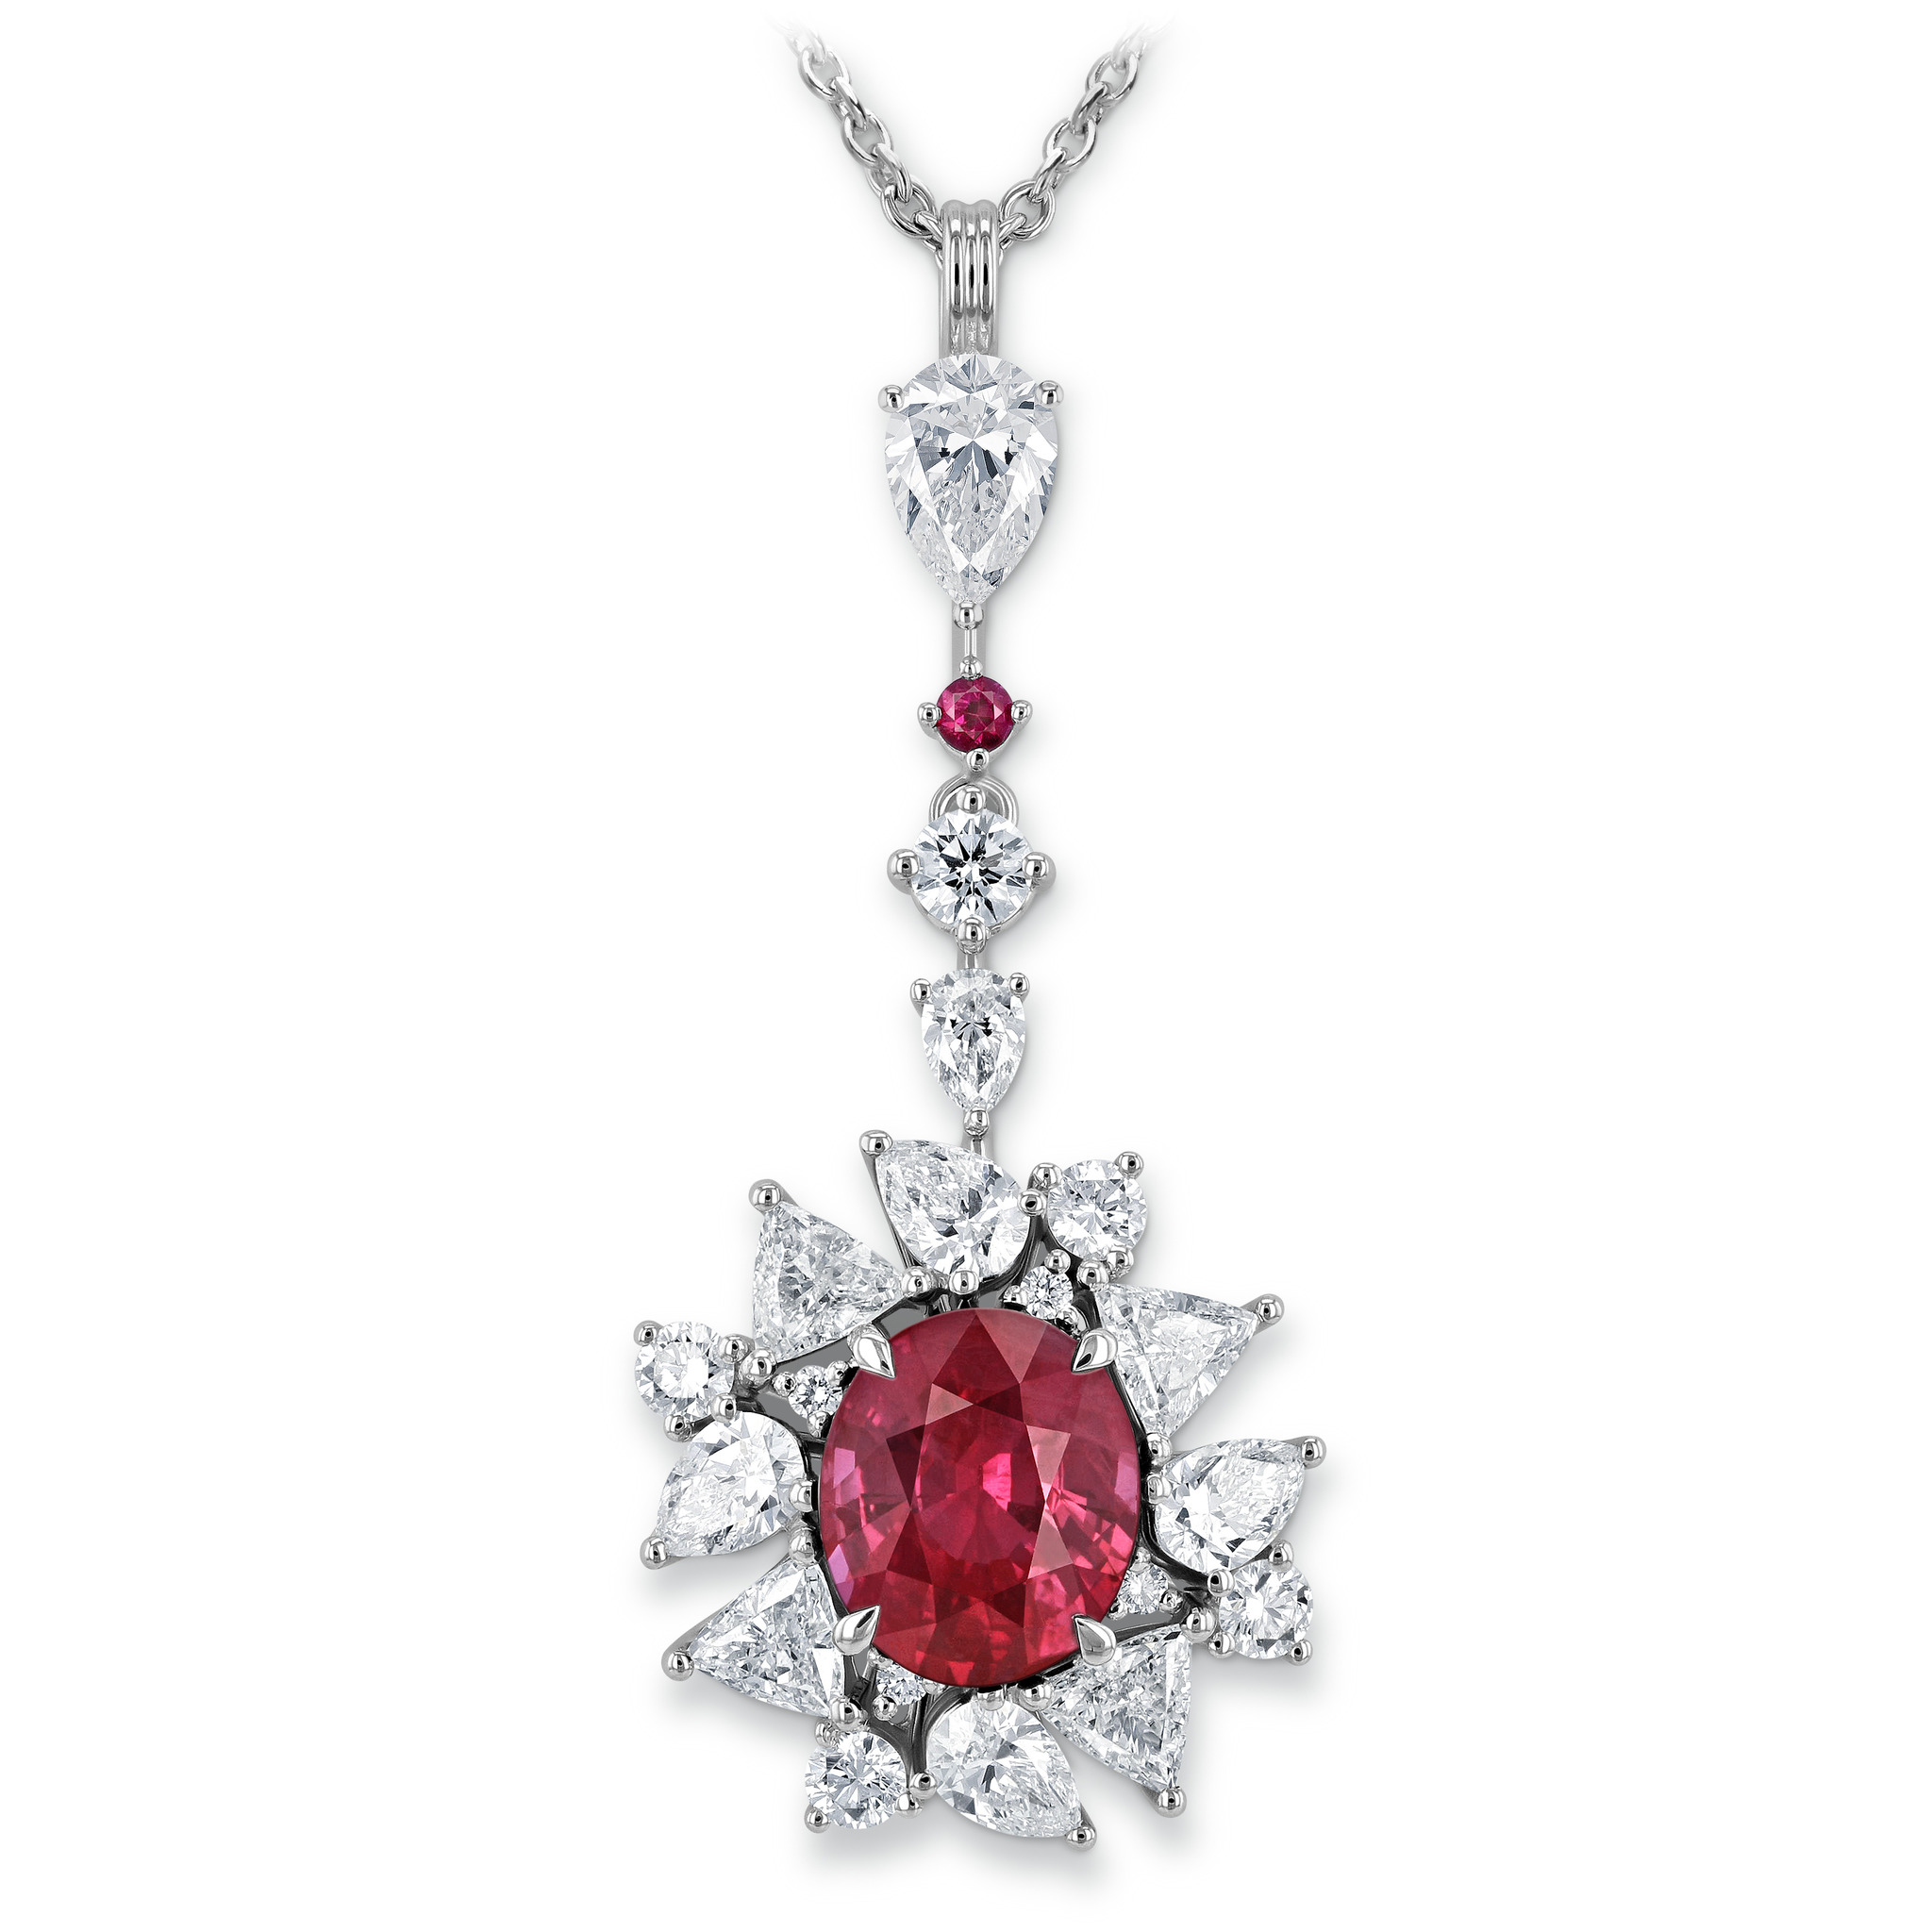 Necklace with ruby